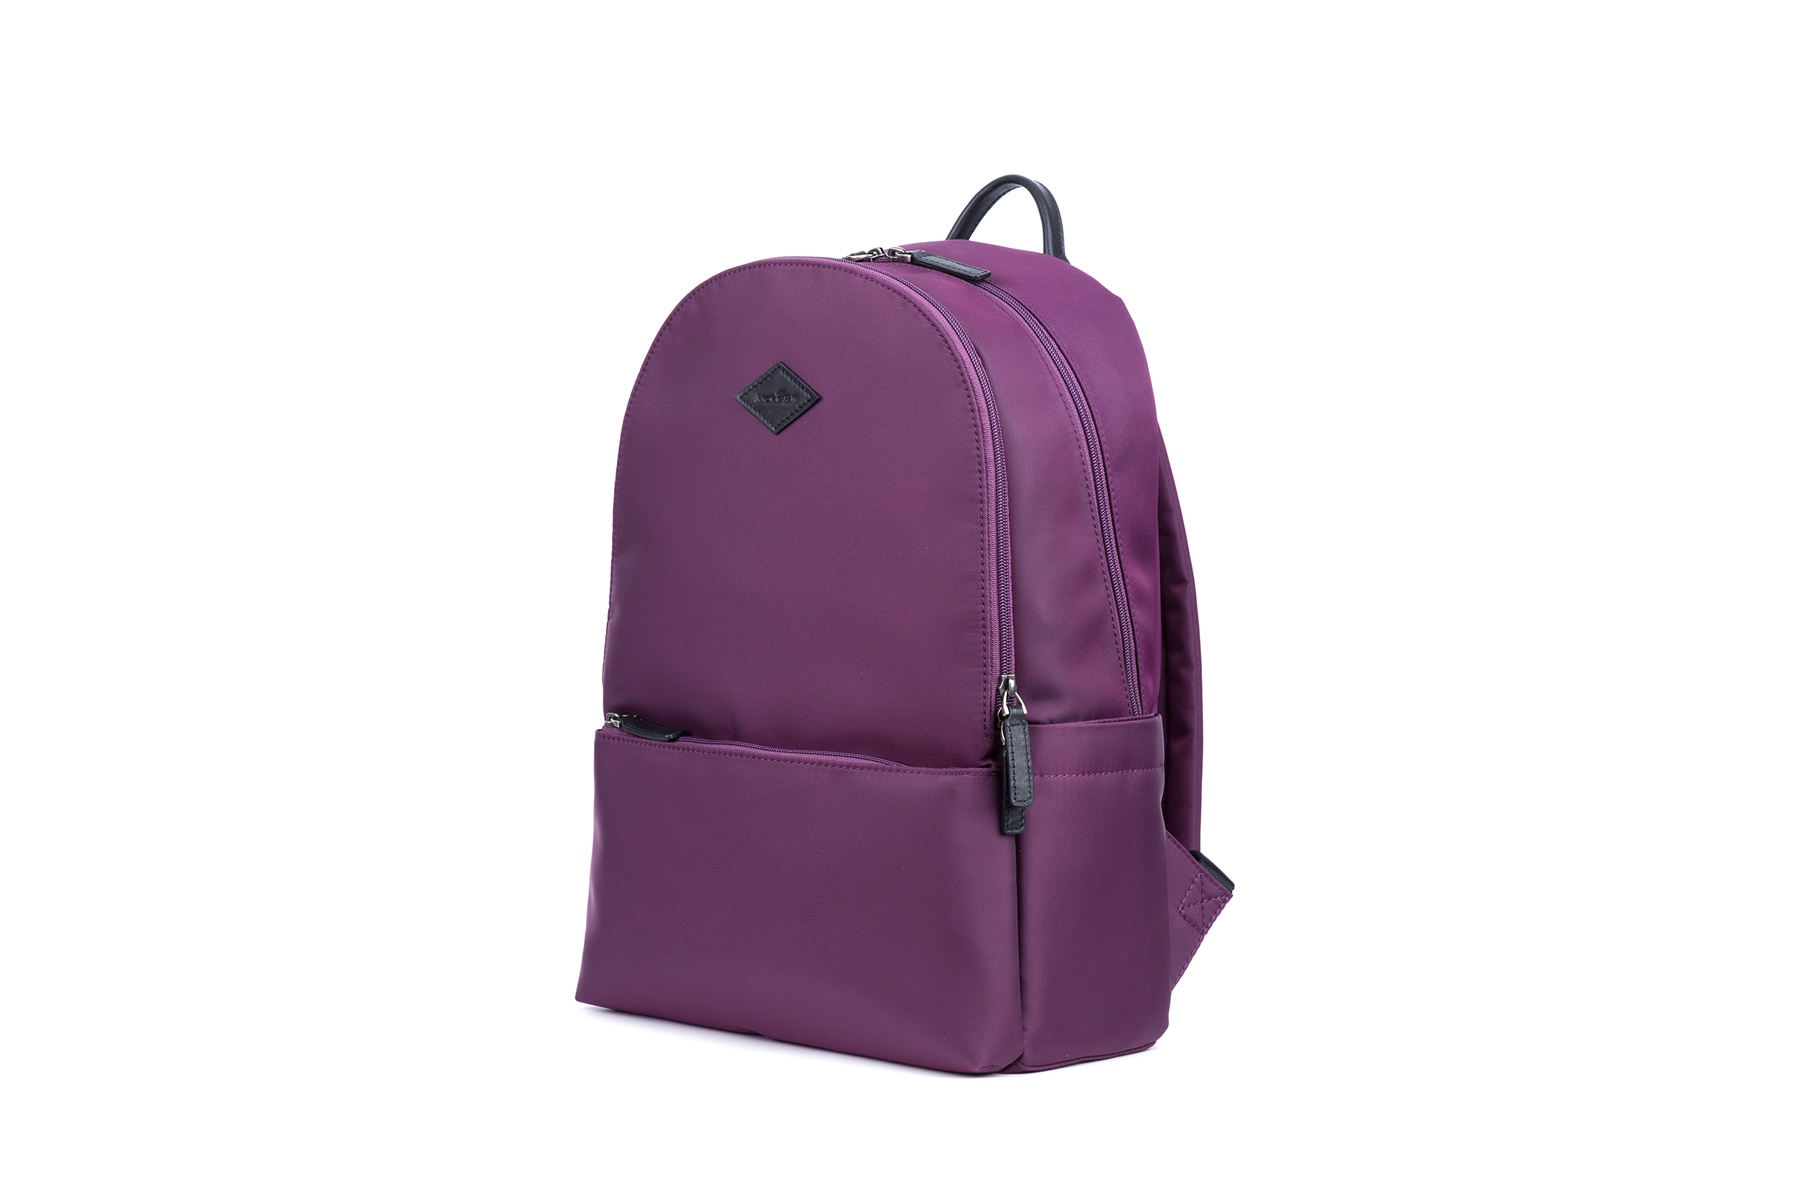 GF bags-Professional Stylish Backpacks Big Backpack Bags Manufacture-5